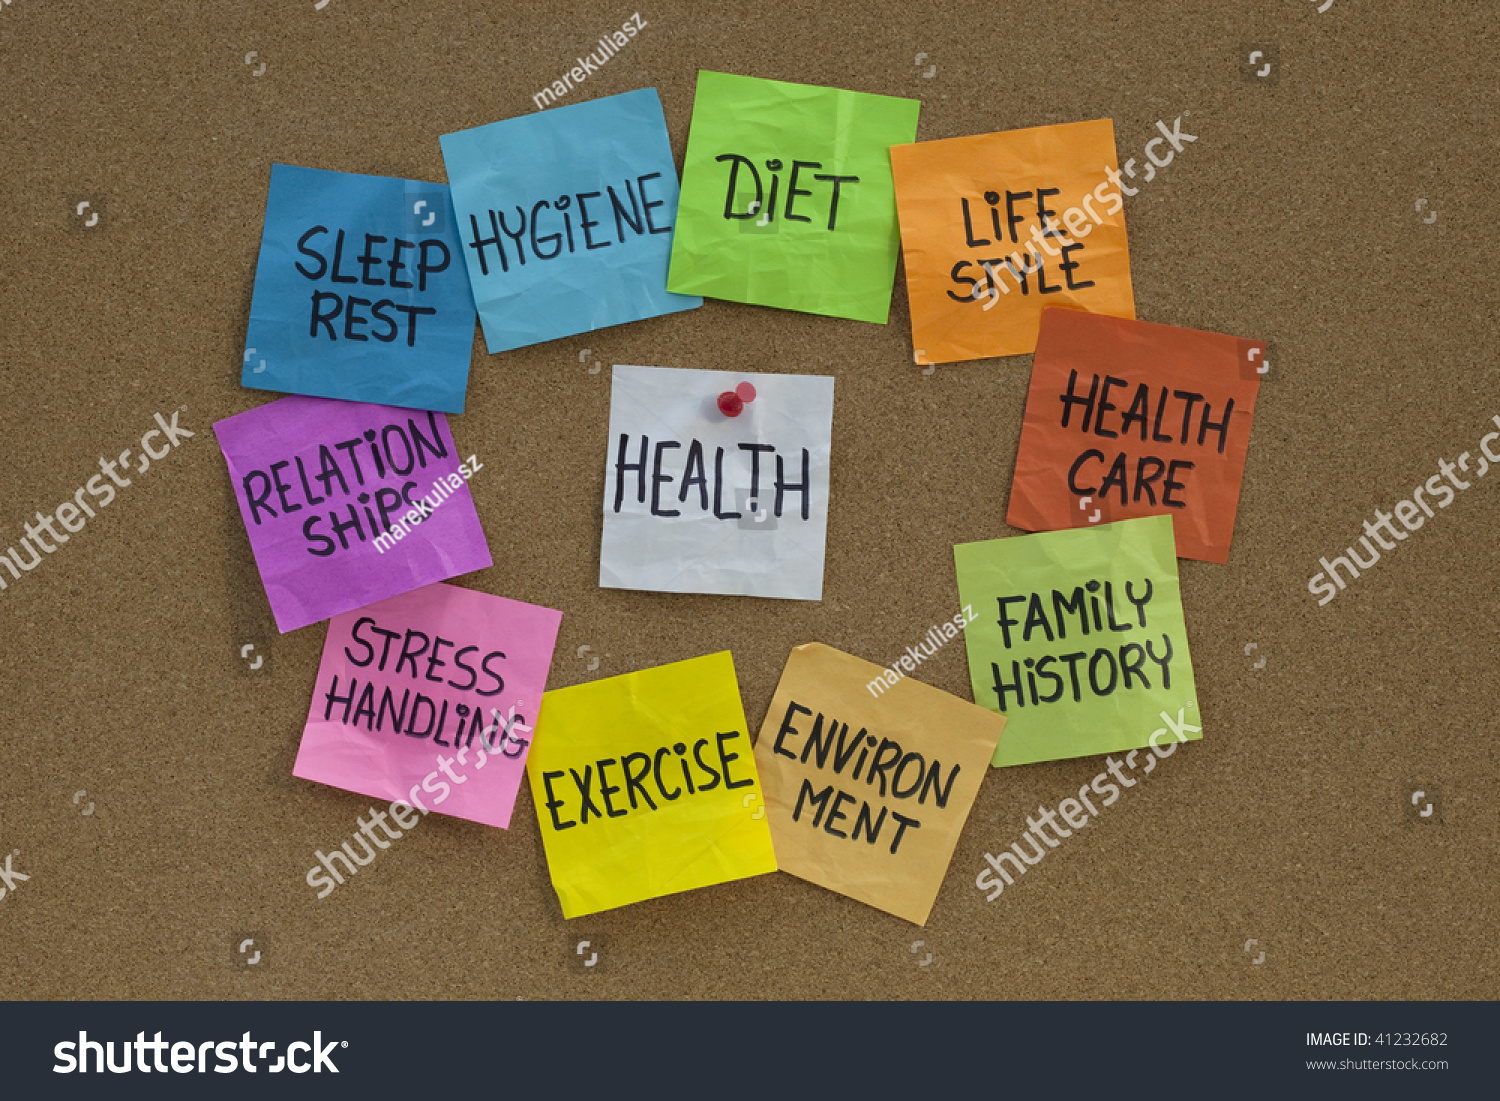 Factors Contributing to a Healthy Lifestyle